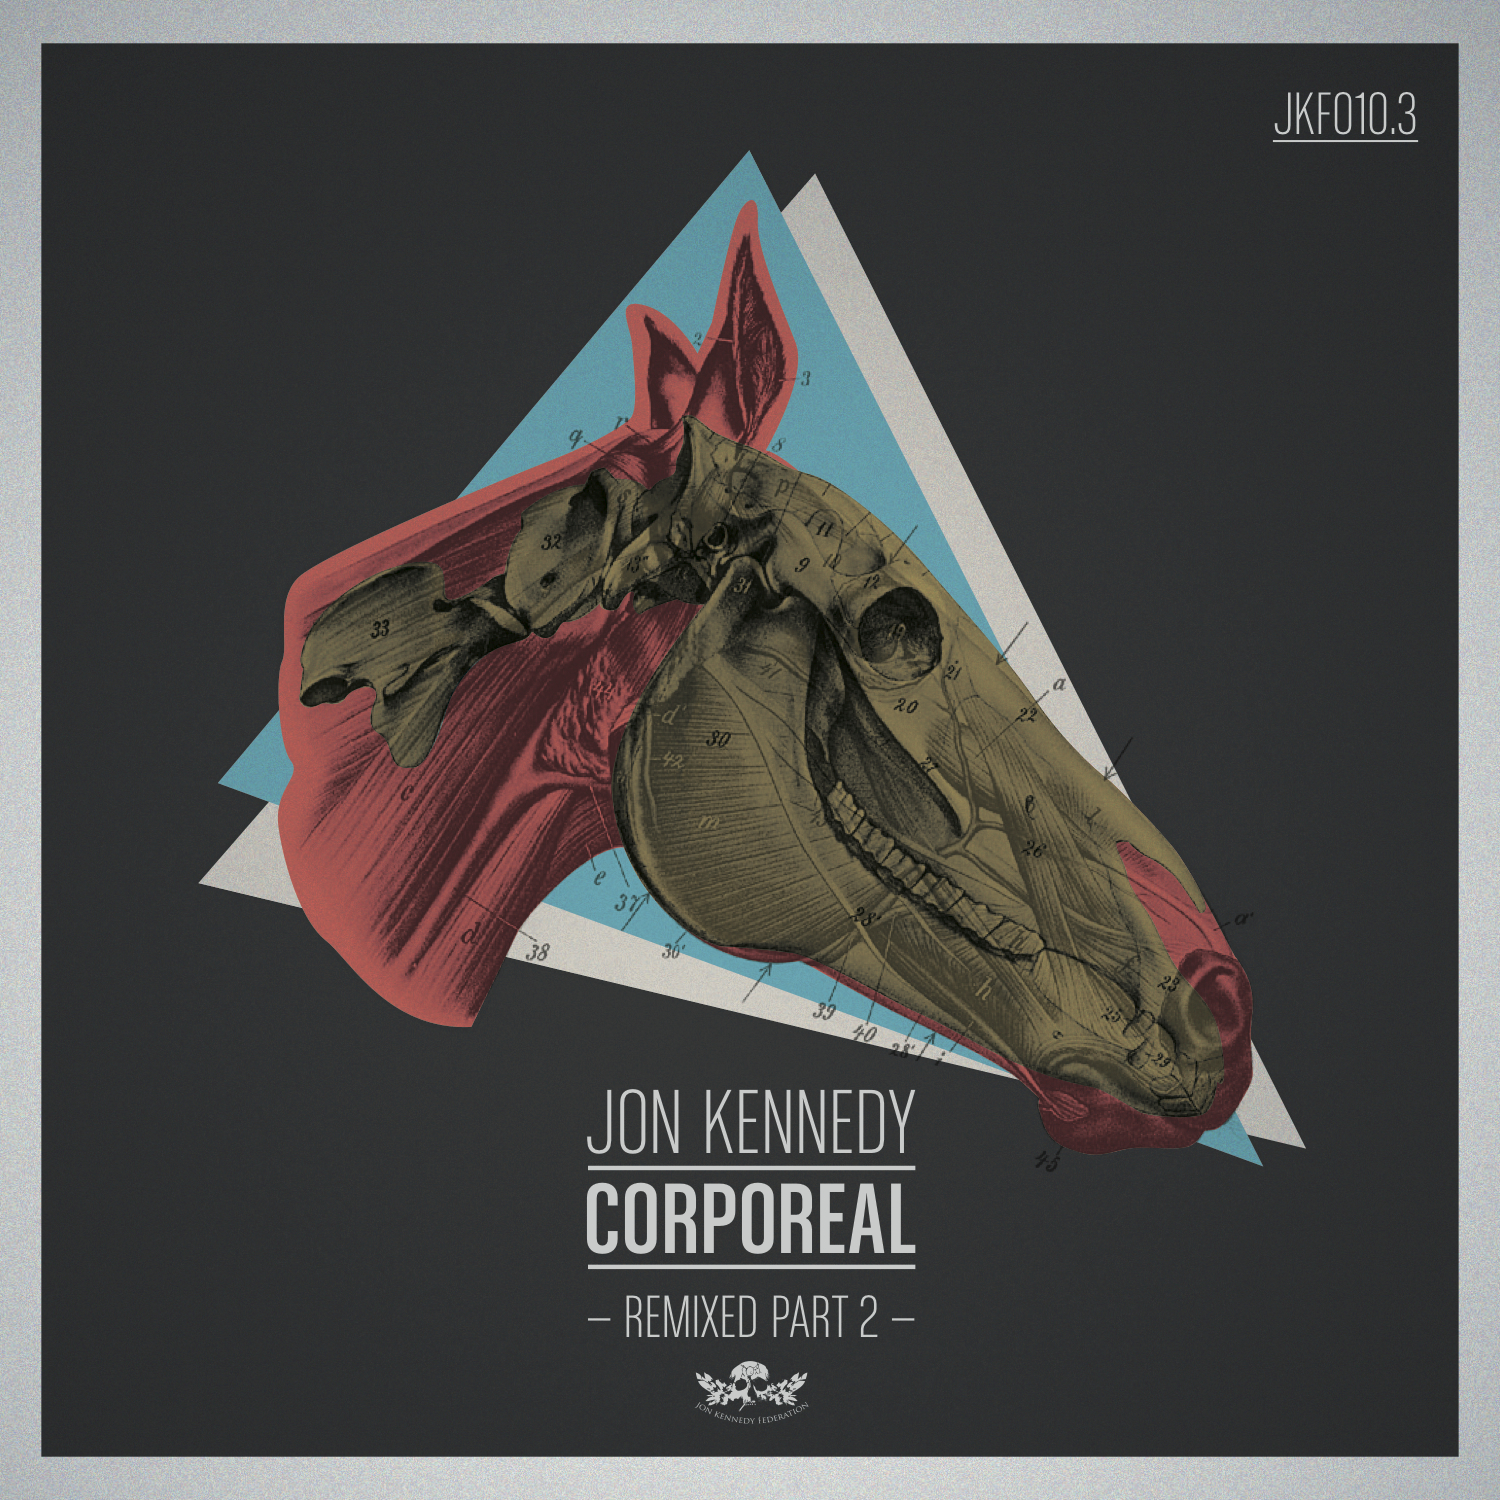 Corporeal Remixed Part 2